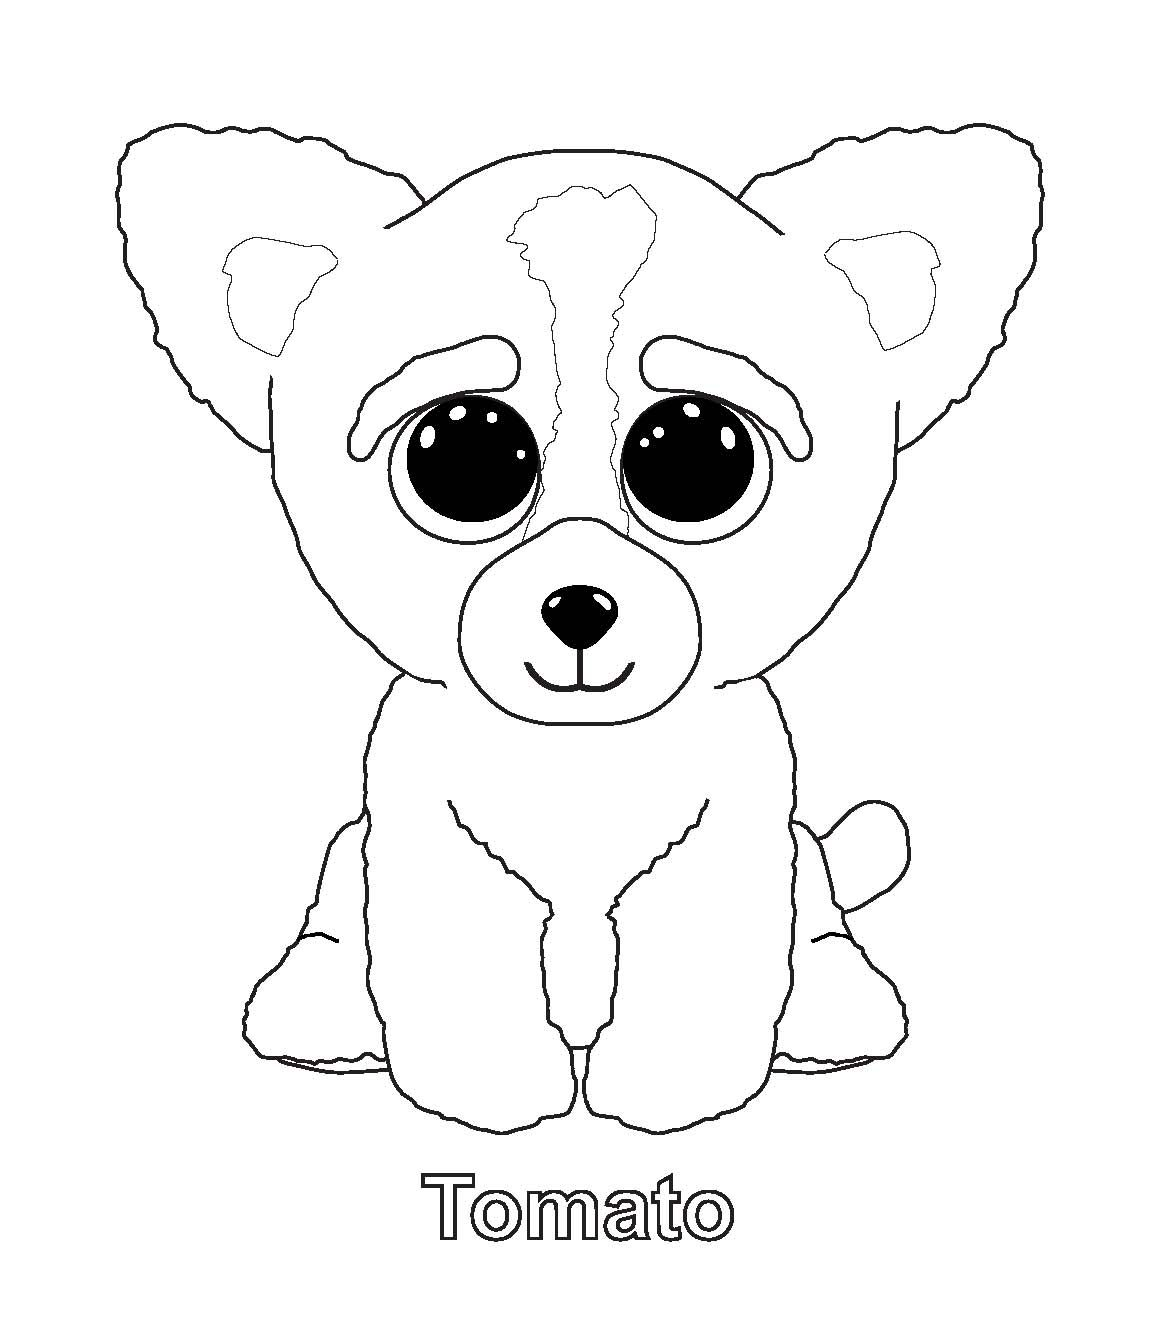 Tomato Beanie Boo Coloring Pages